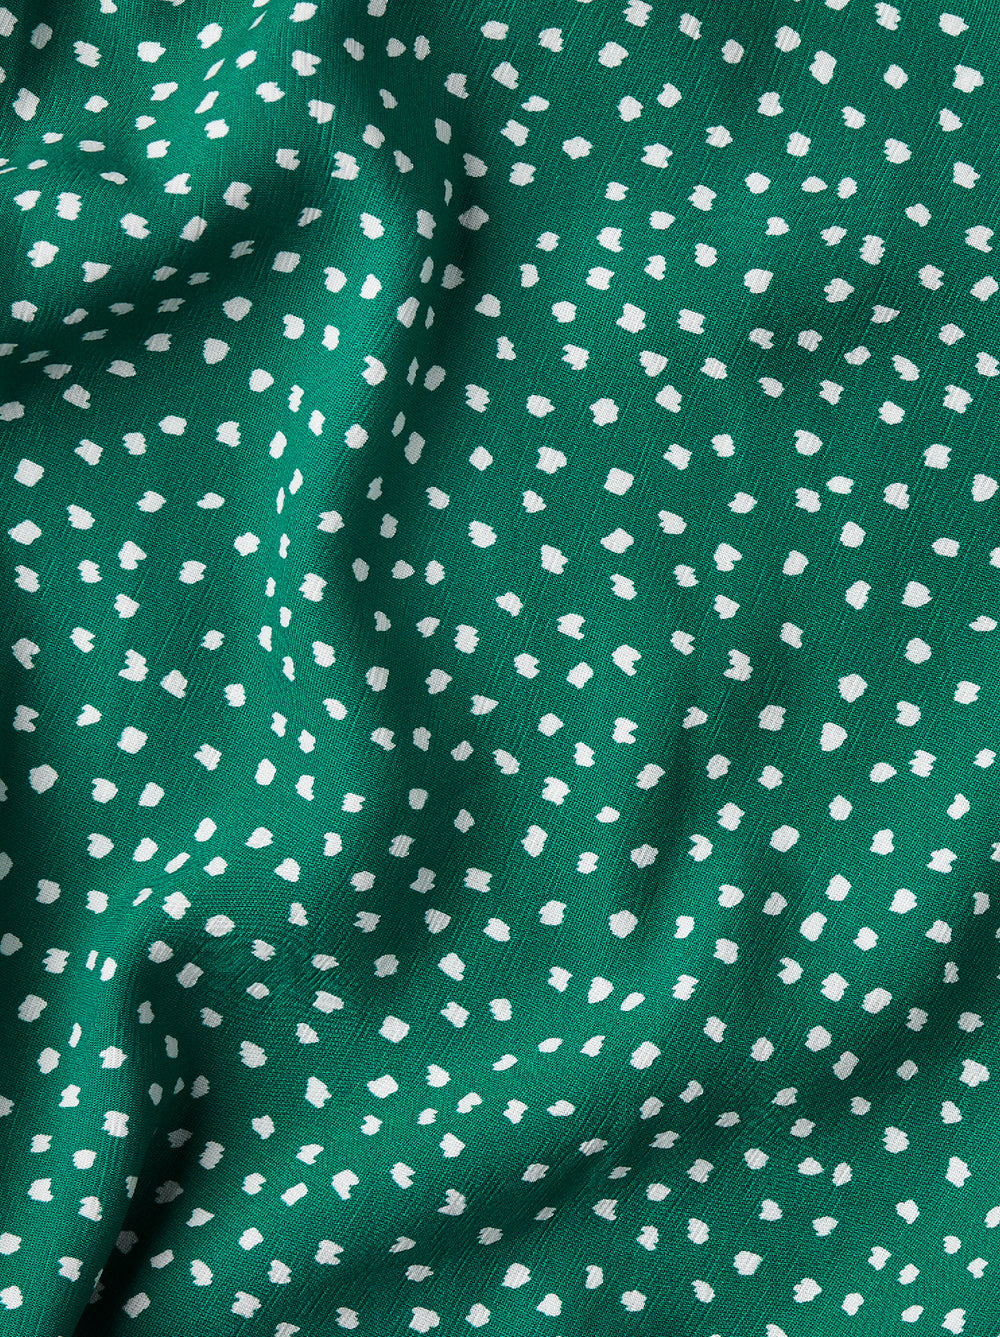 Molly Green Spot Print Smocked Dress